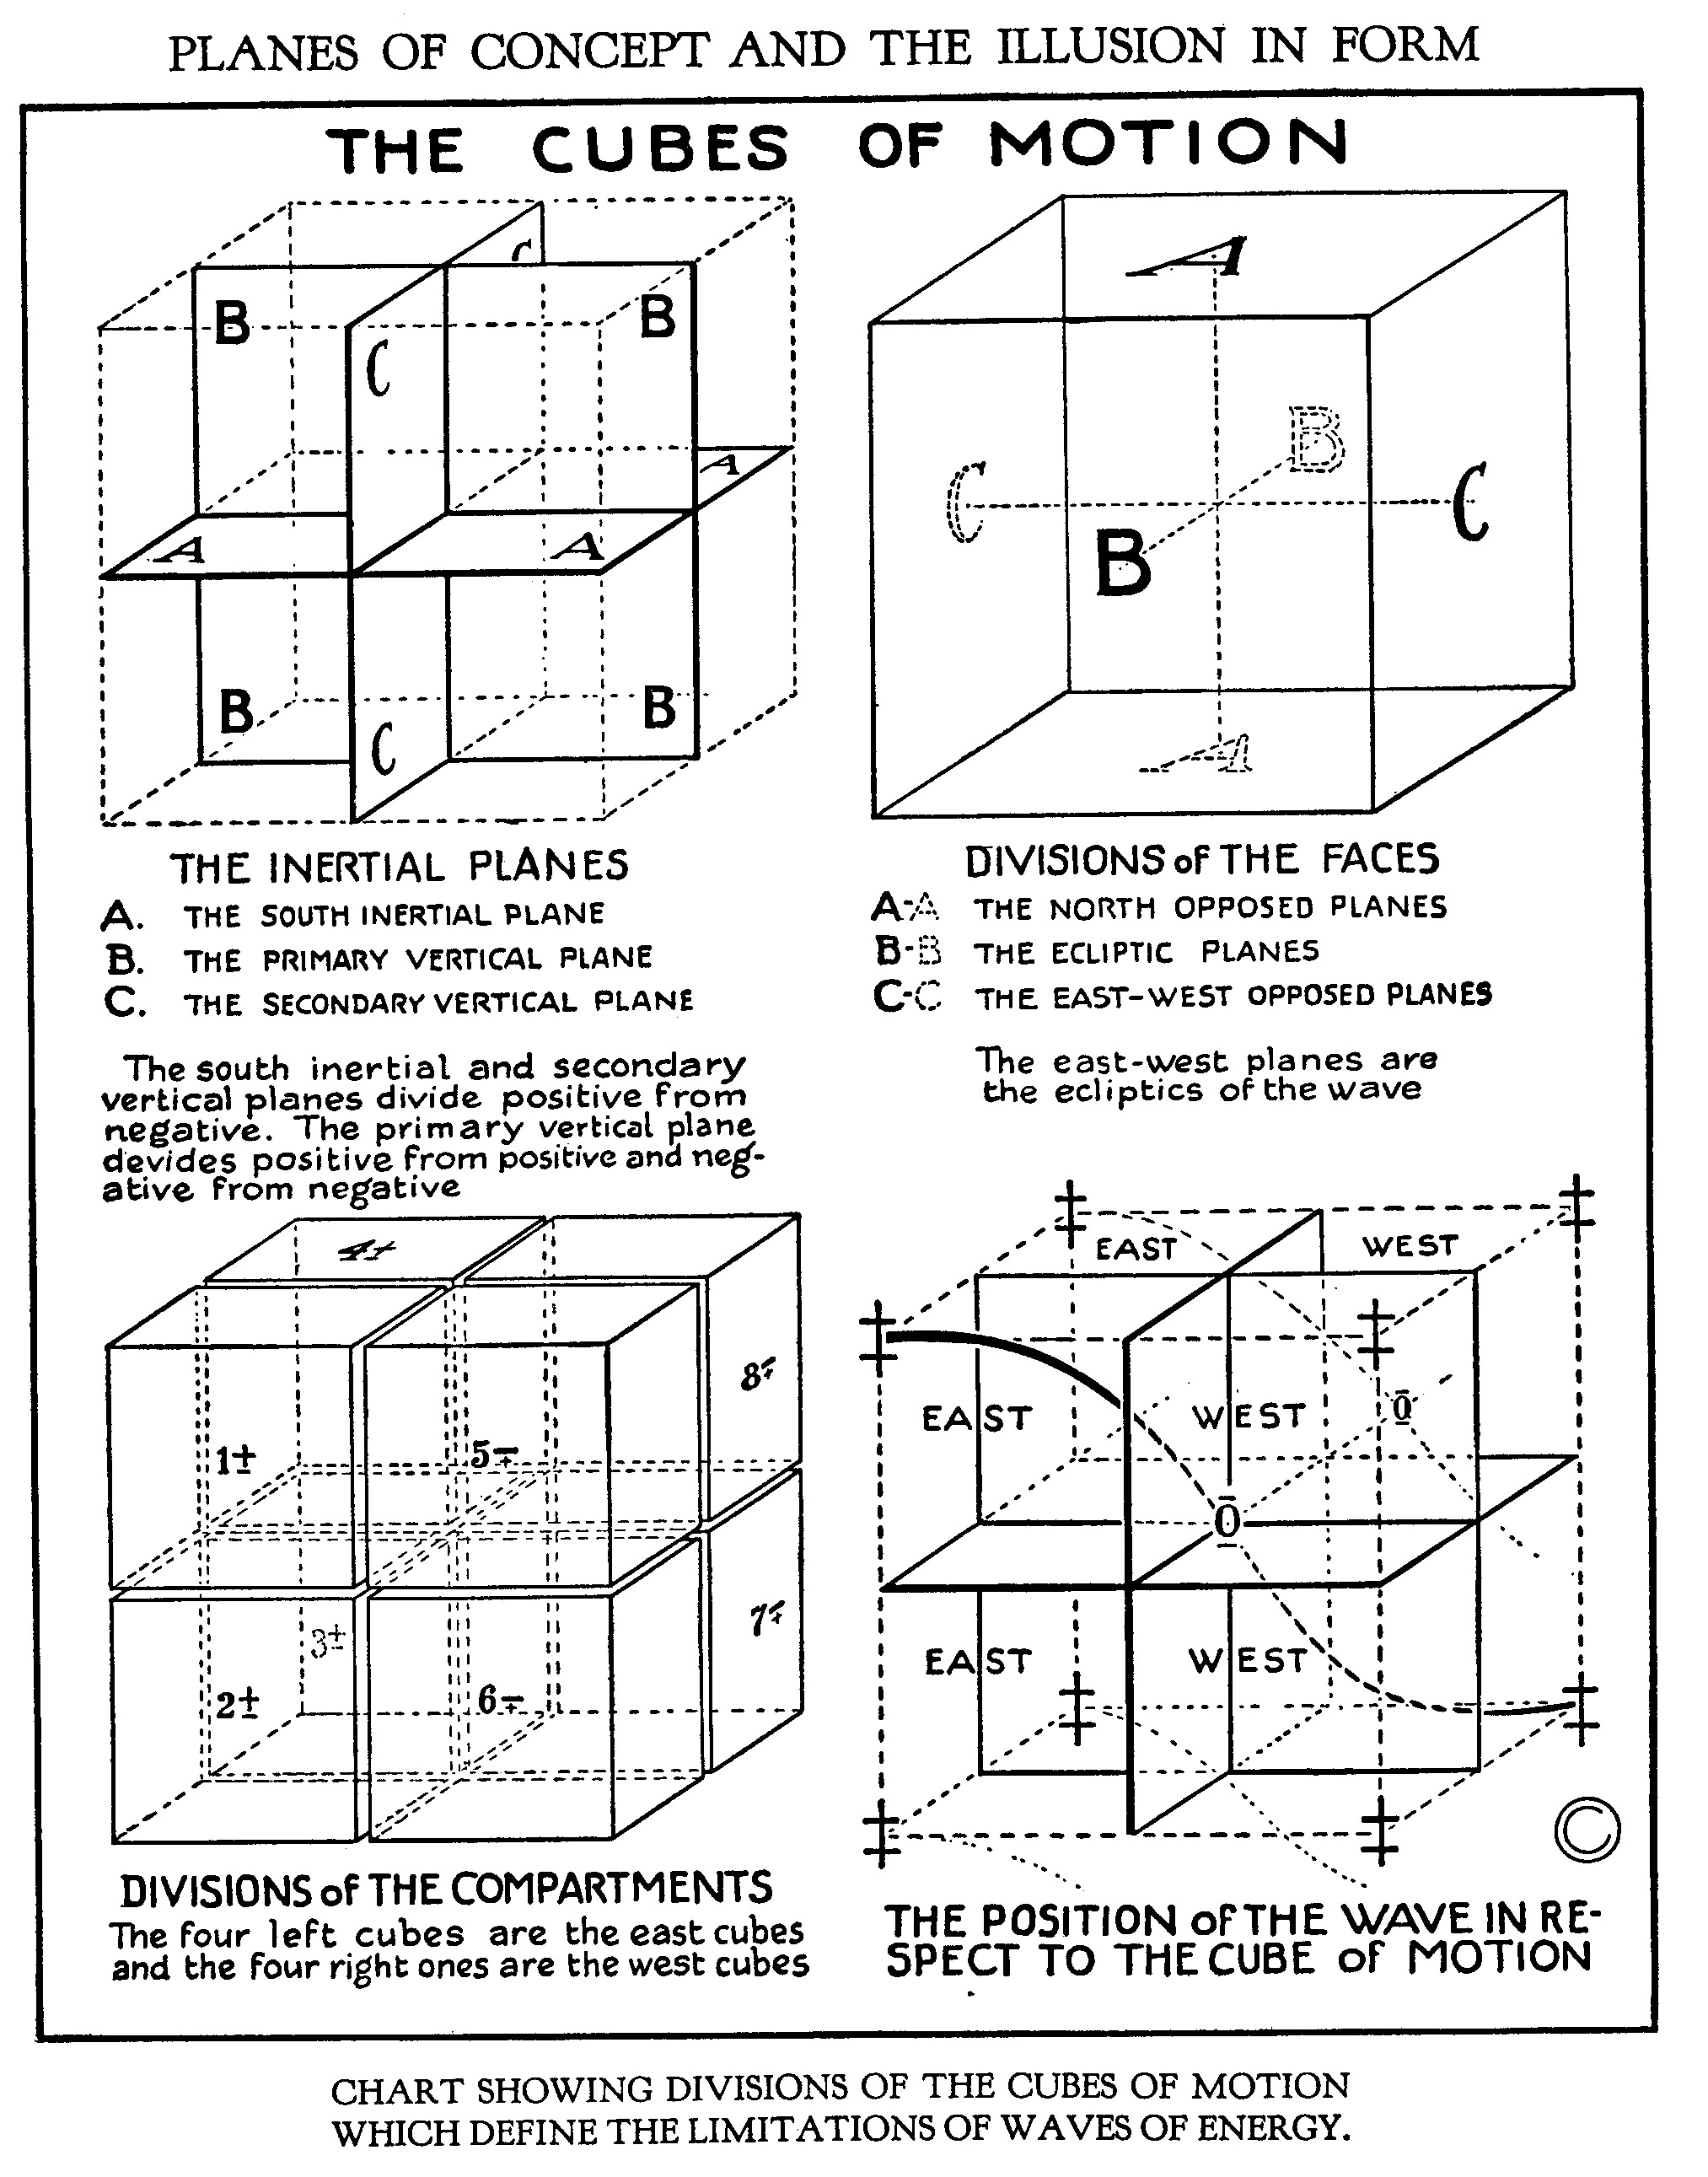 Planes of Concept and the Illusion of Form